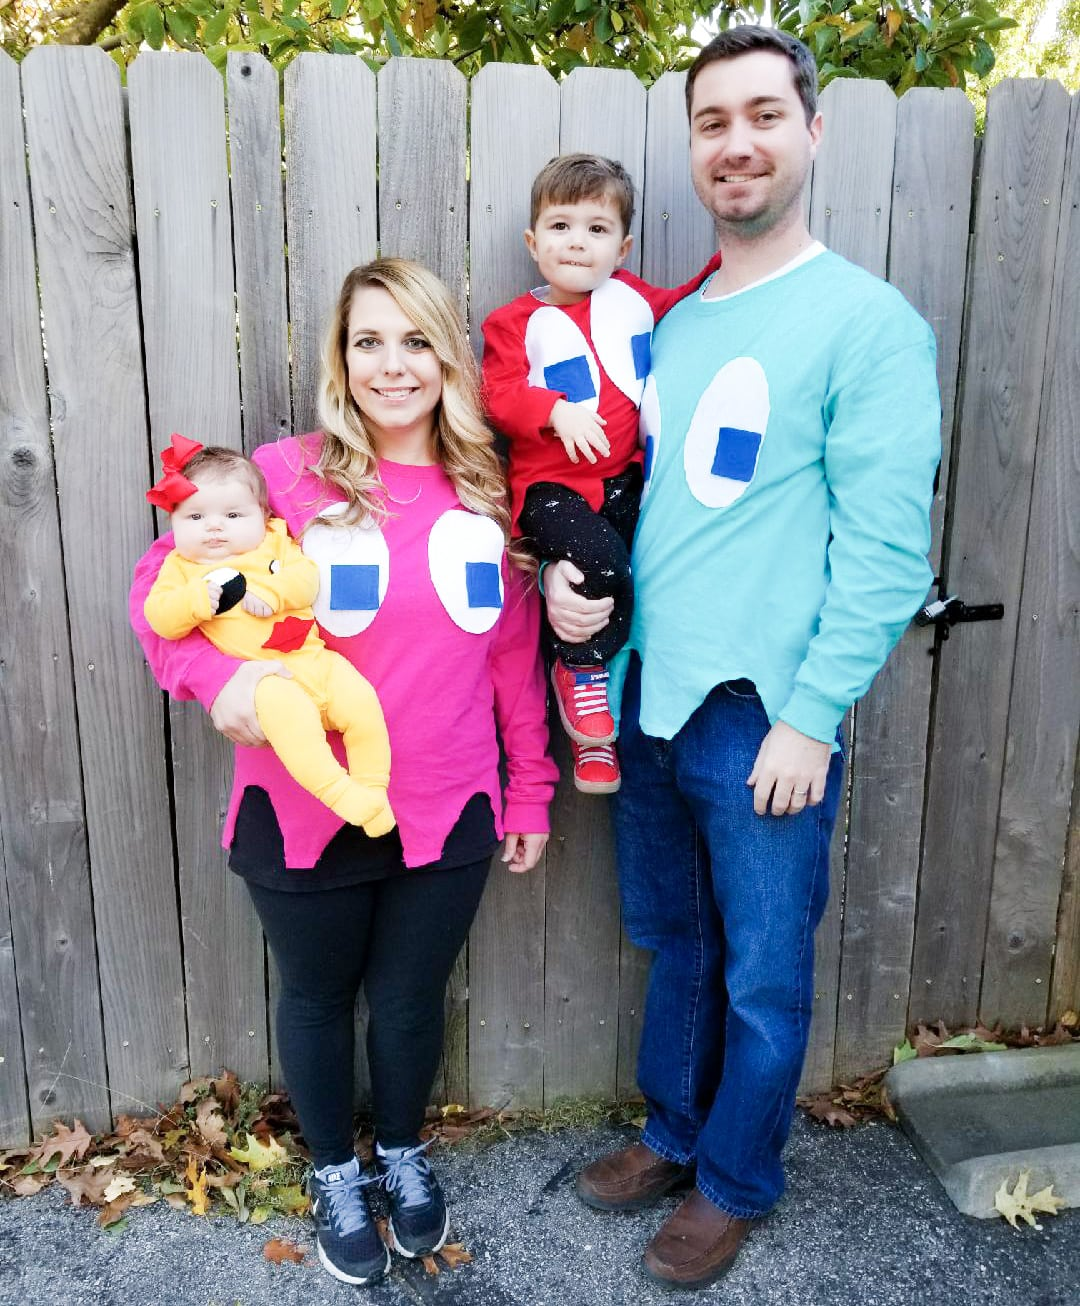 Pacman Family Halloween Costumes - Check out these 40 cute and creative Halloween costume ideas for women, couples, families, and friends! #halloween #halloweencostumes #halloweencostumeideas